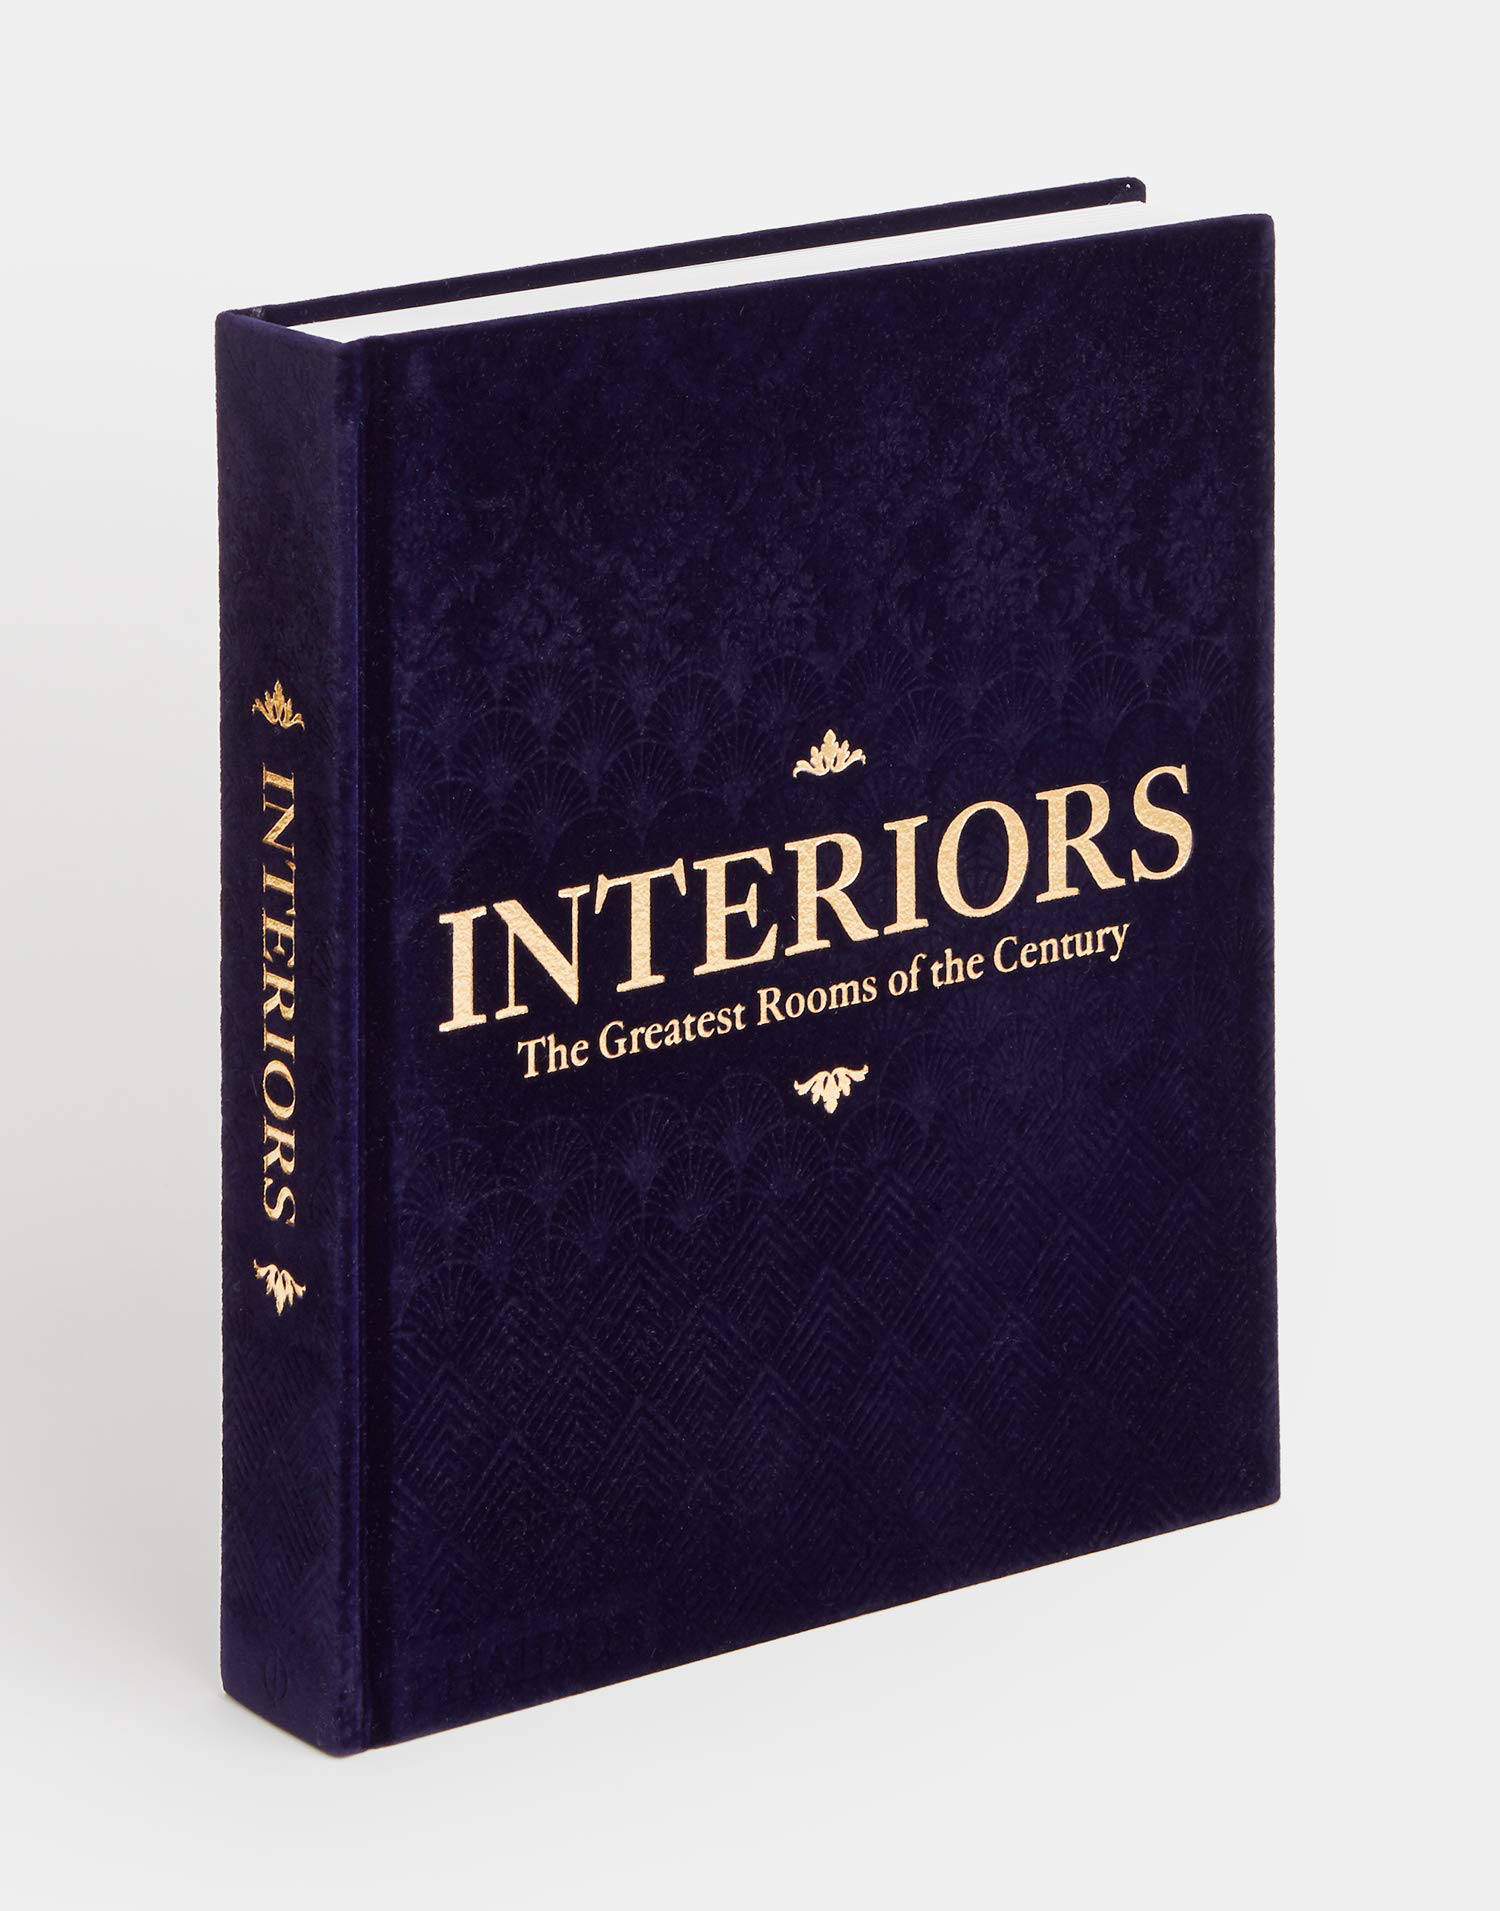 Interiors, The Greatest Rooms of the Century by Phaidon